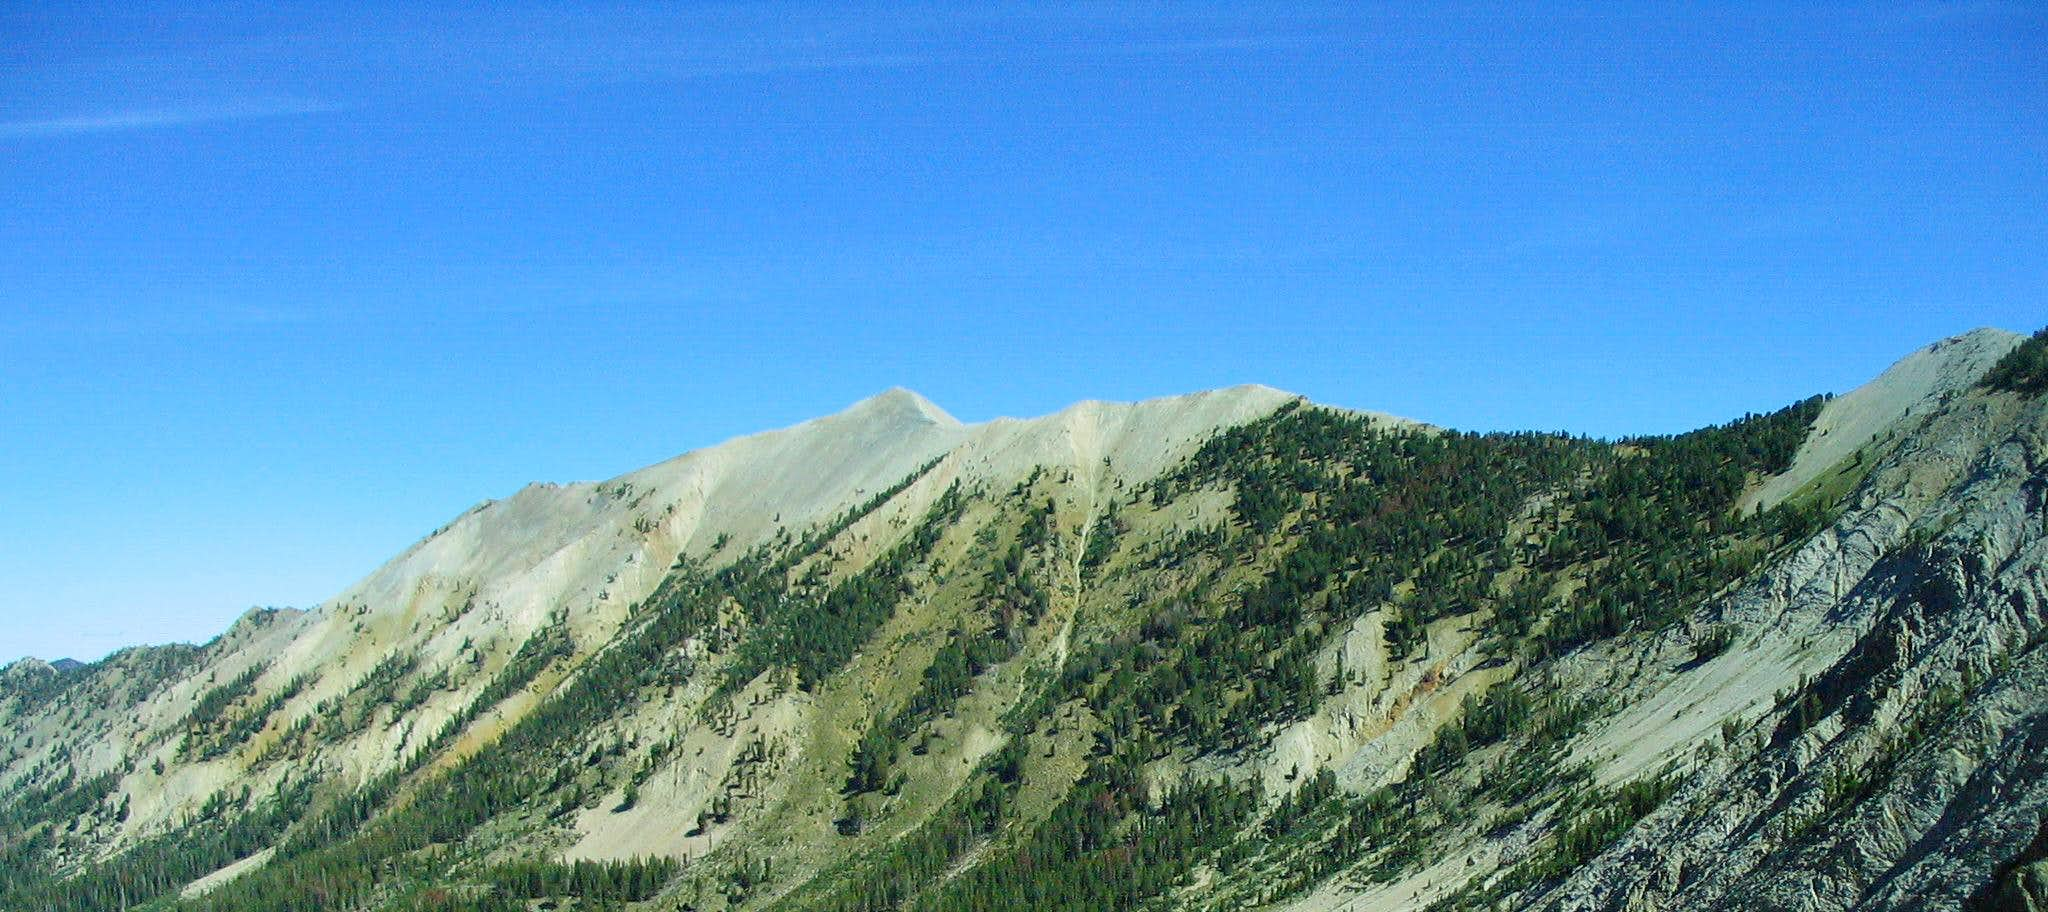 Washington Peak